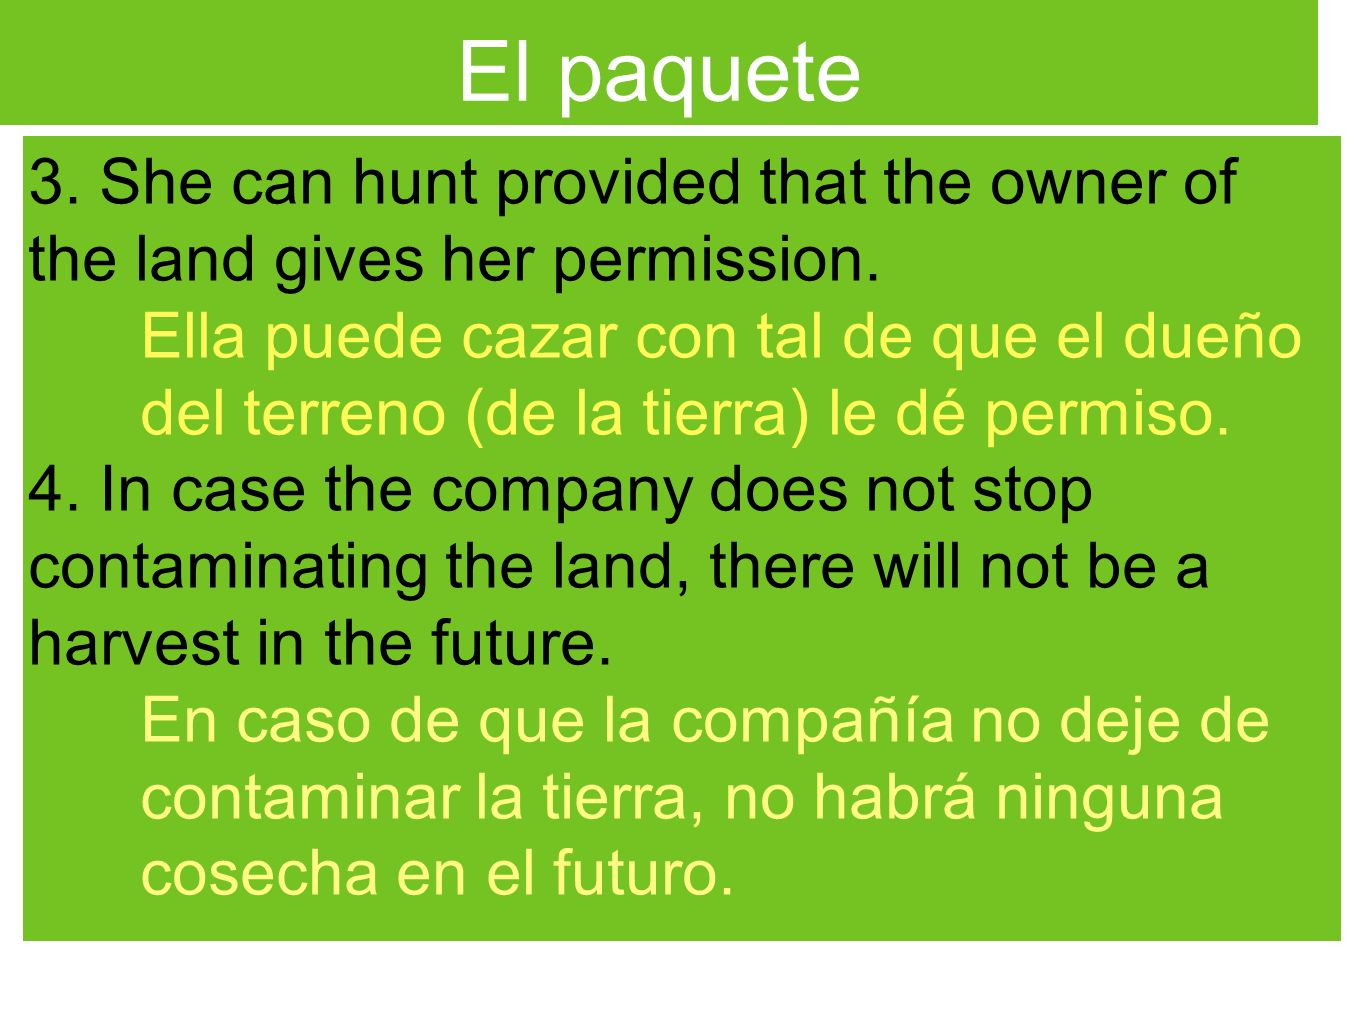 El paquete 3. She can hunt provided that the owner of the land gives her permission.